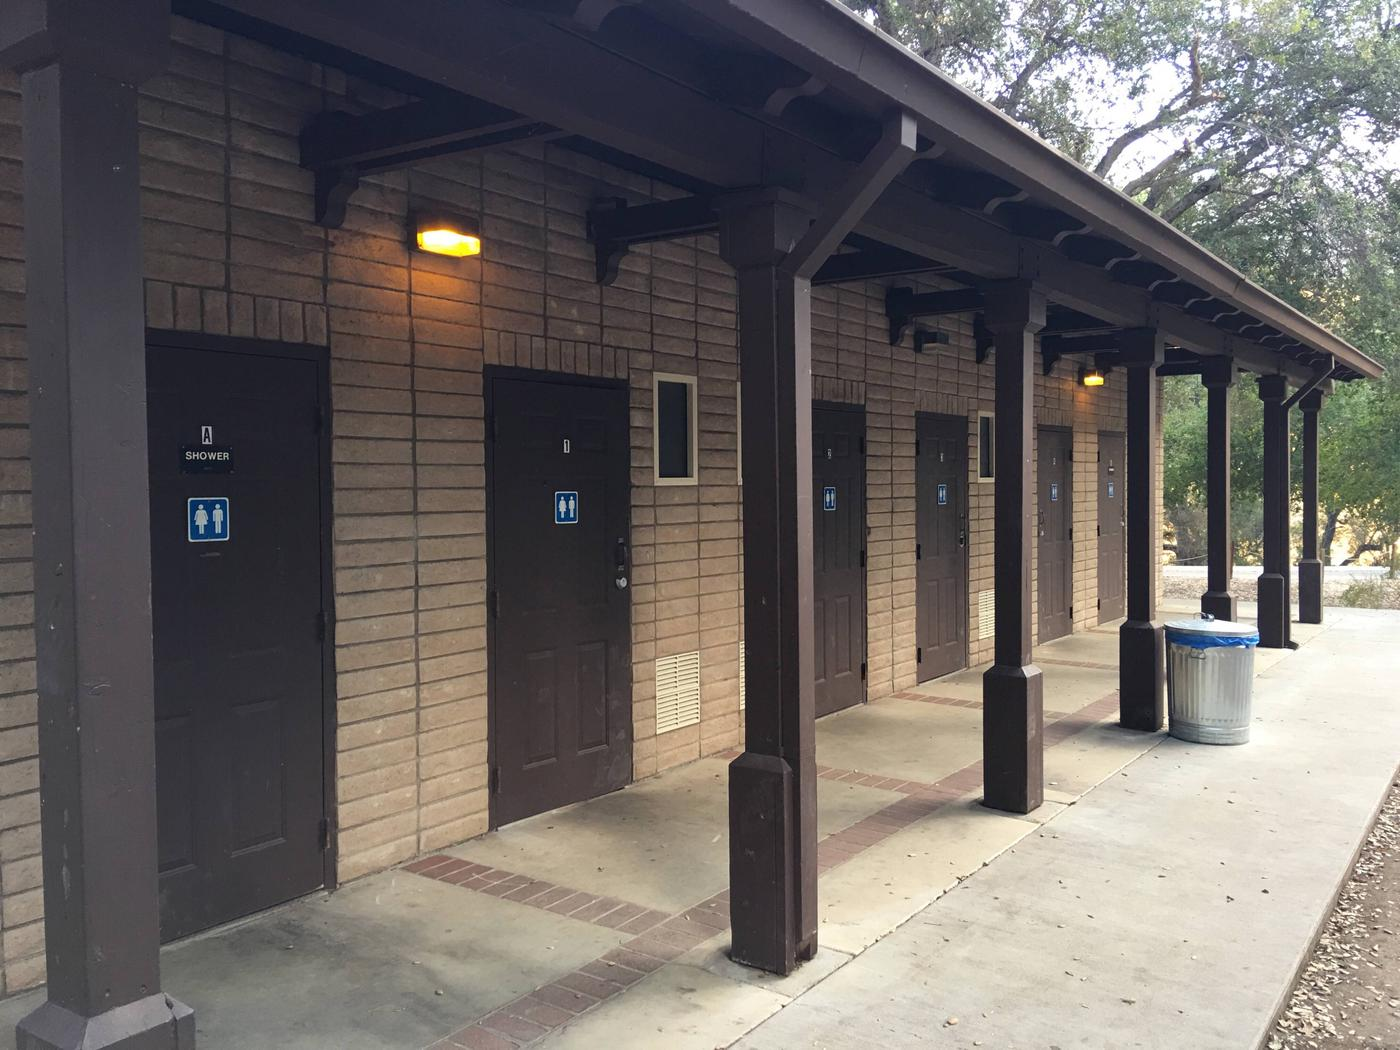 Arroyo Seco Main Campground restroom and Shower Building